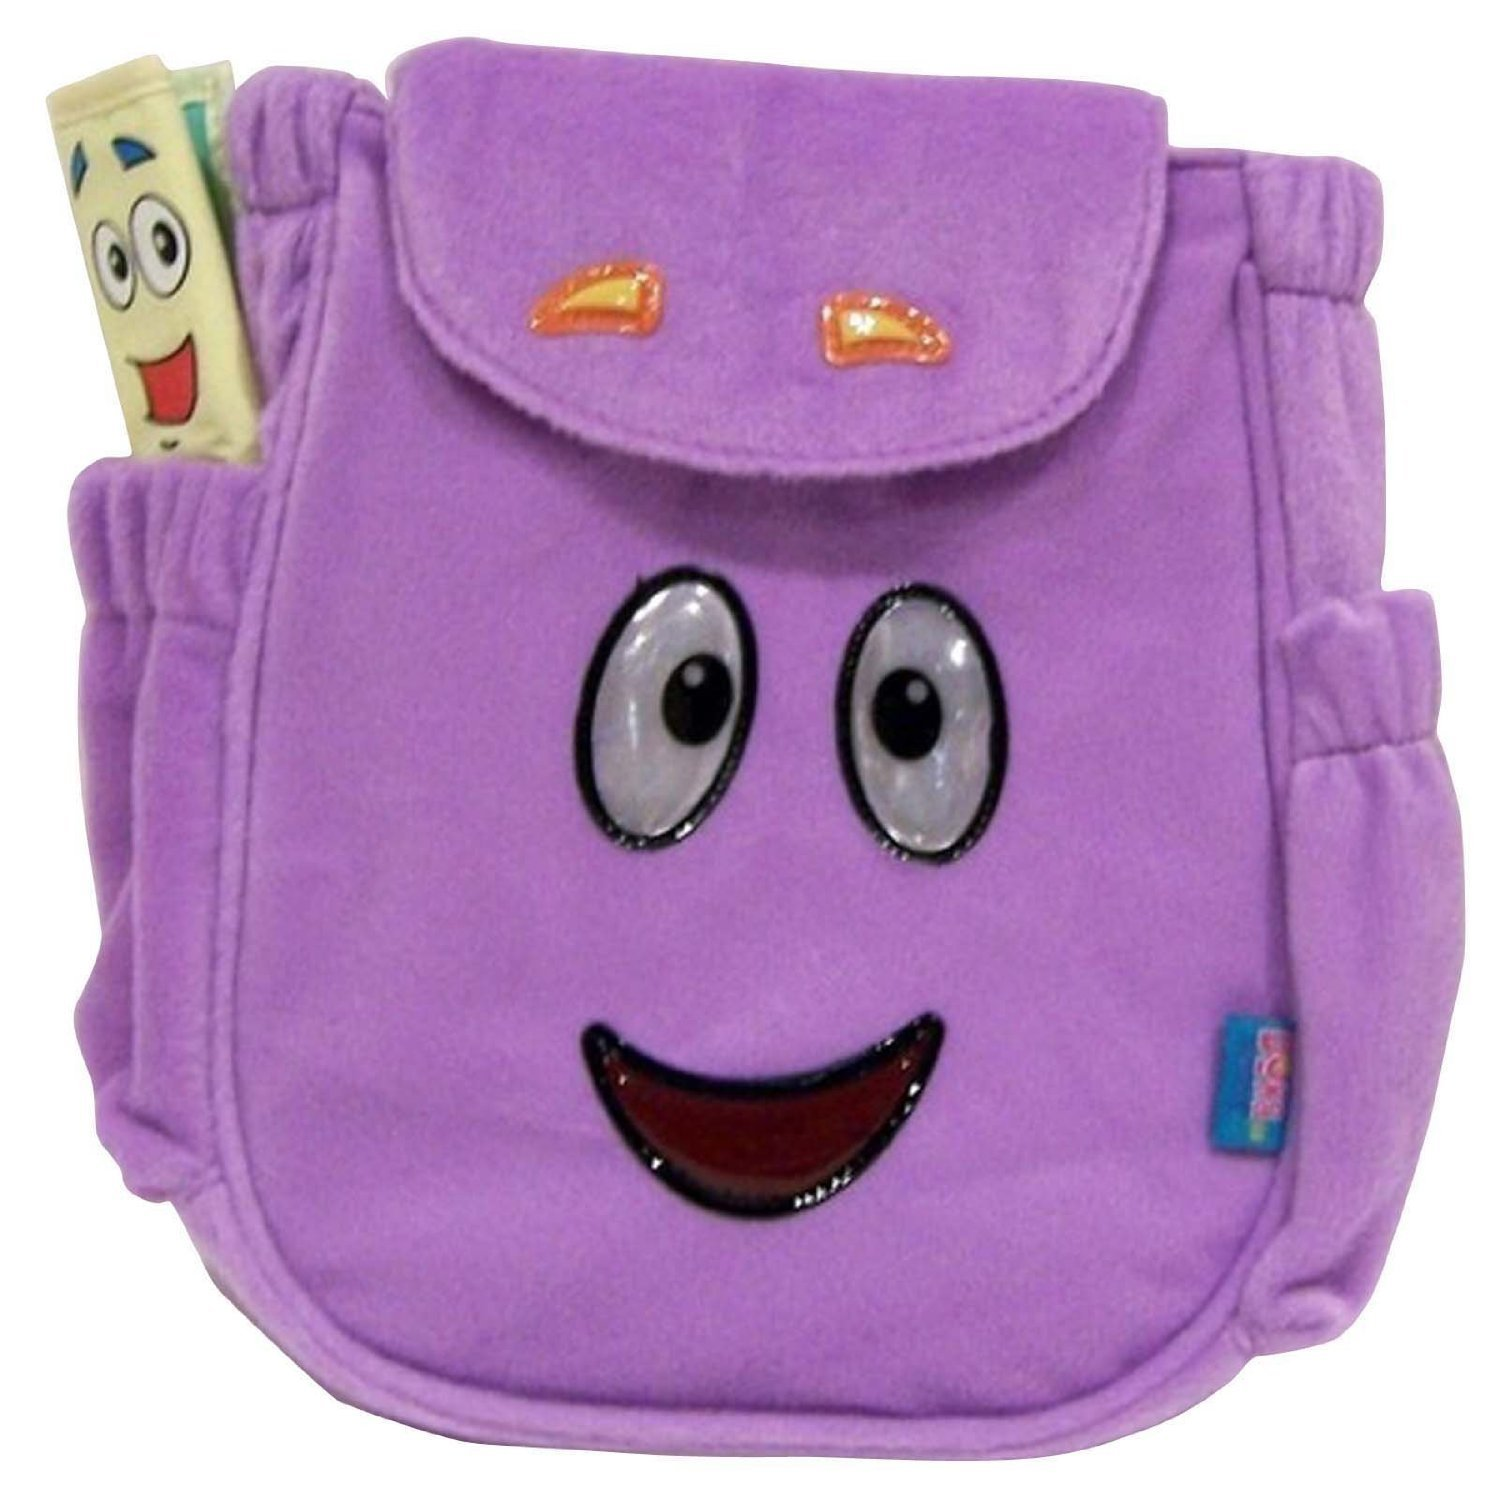 "Backpack 11"" for KIDS, By Dora the Explorer by"